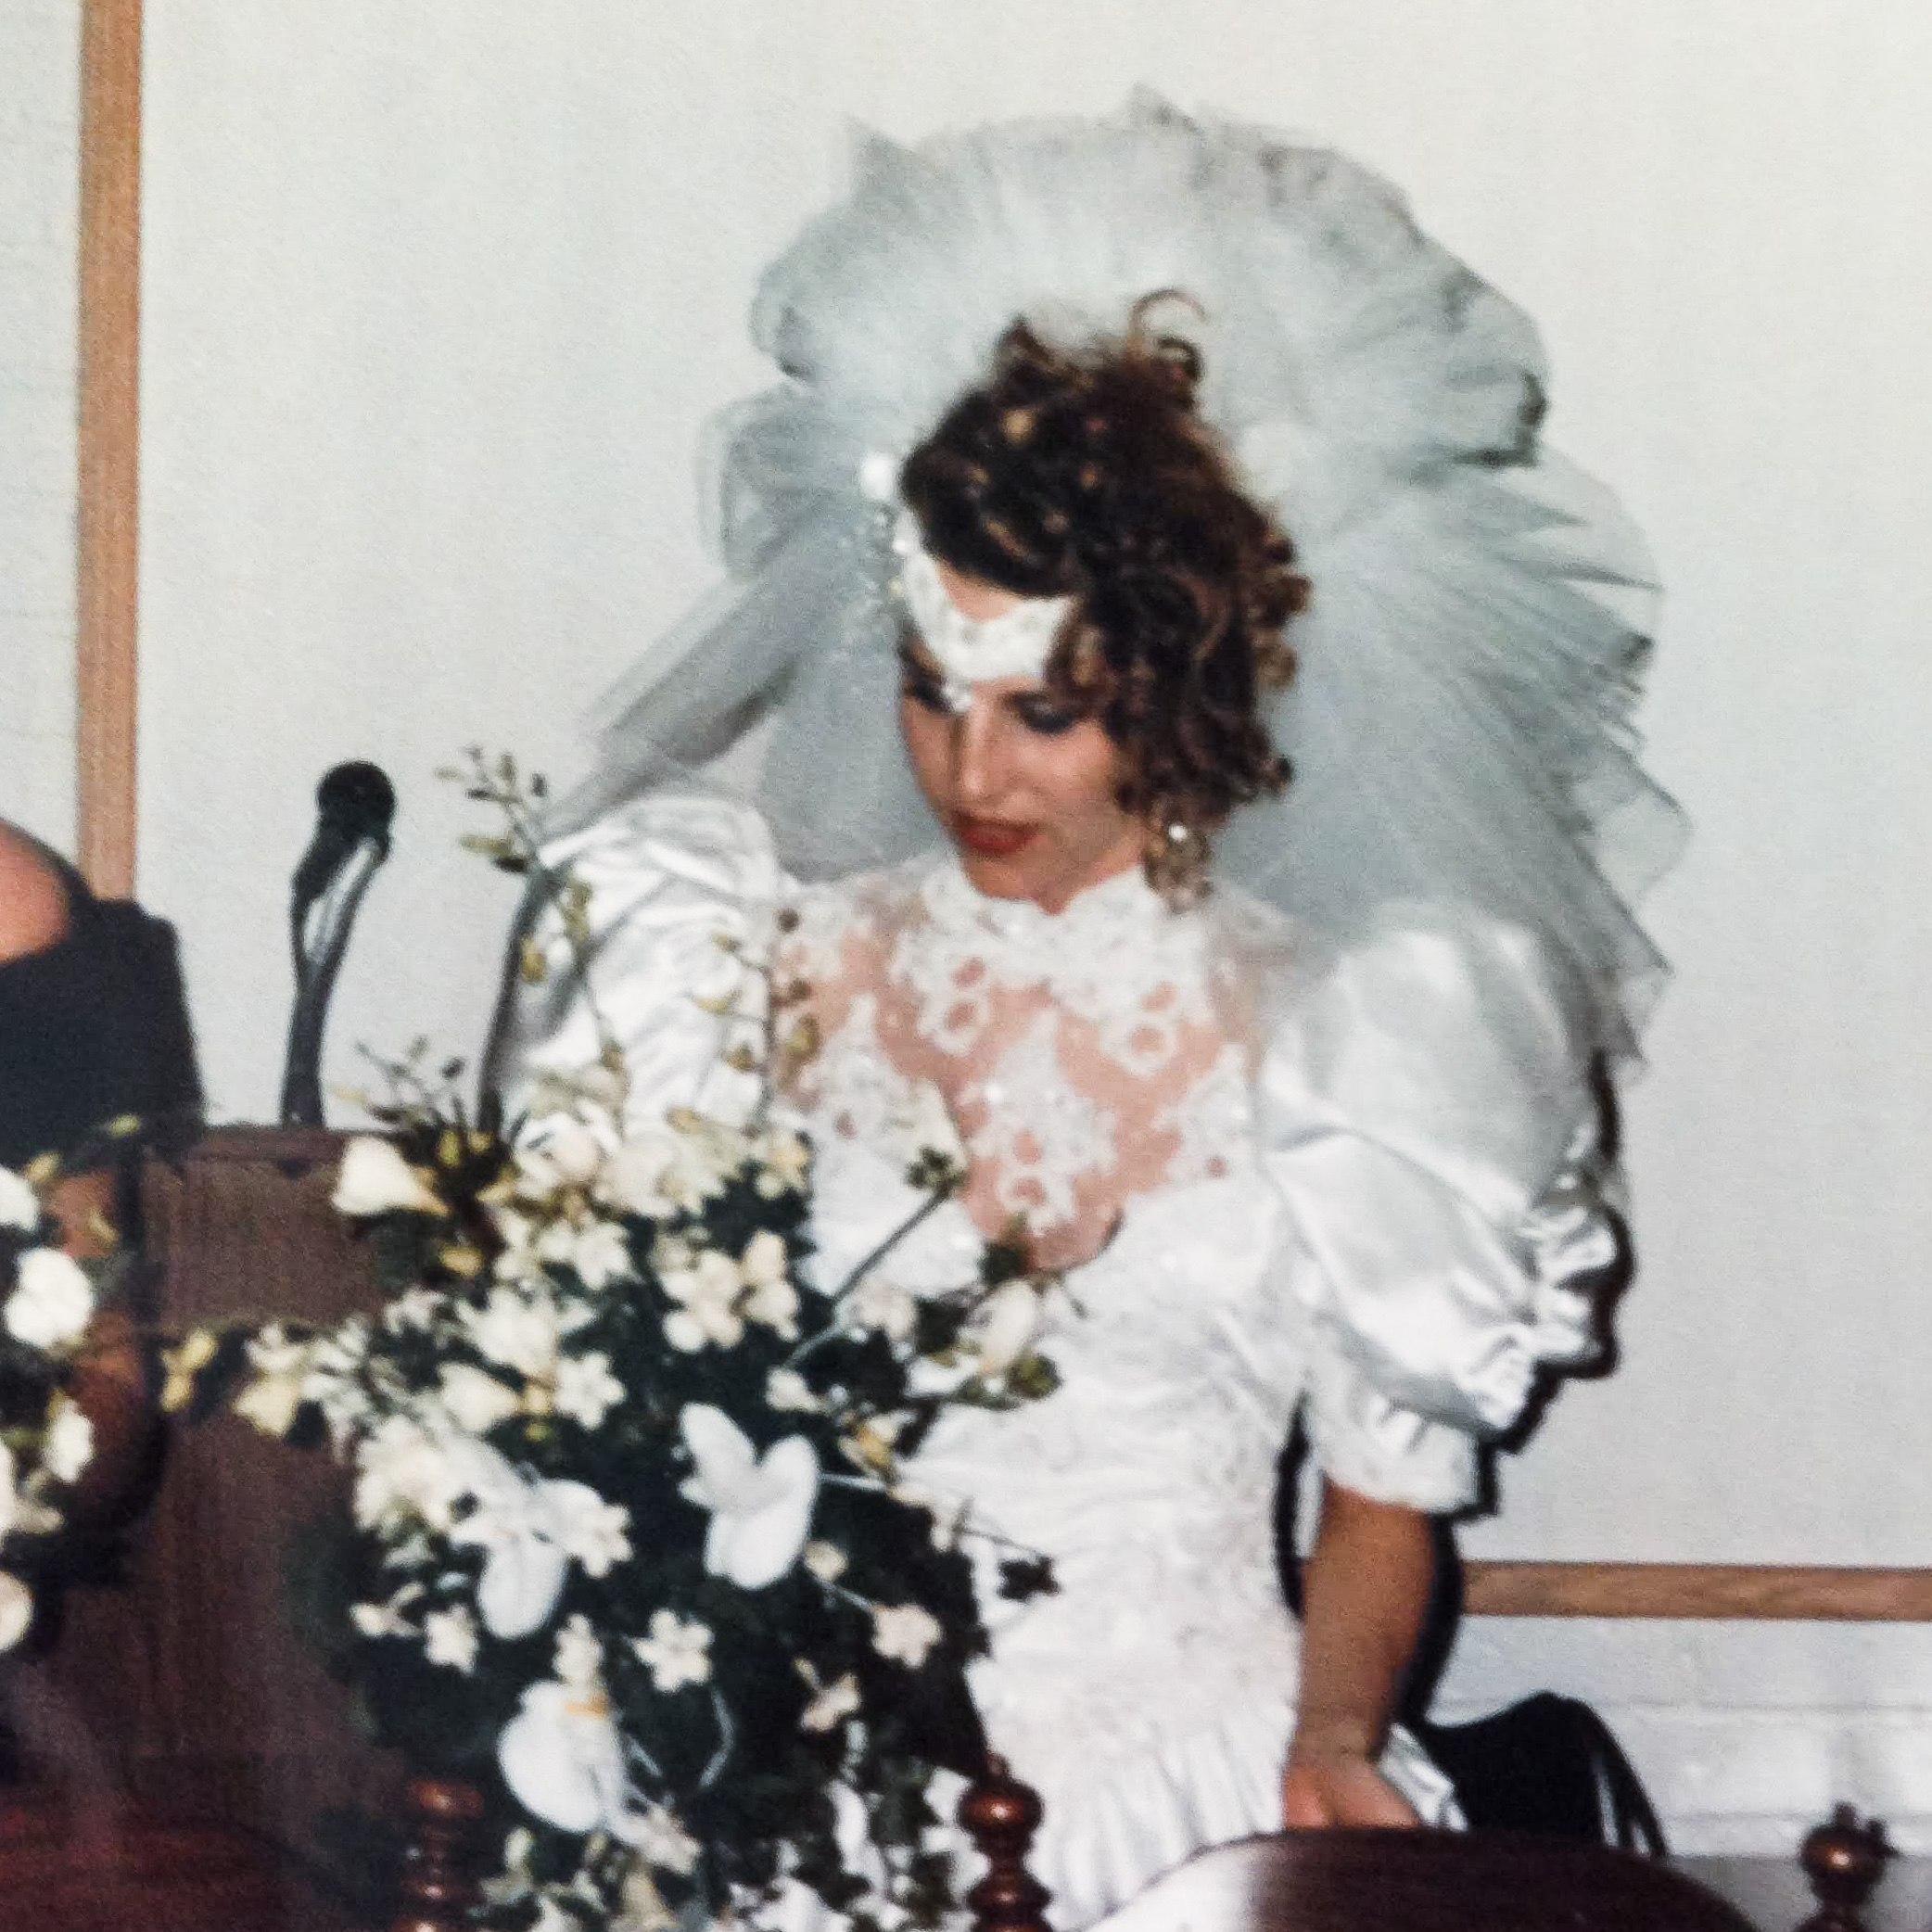 My aunt at her wedding in the 80s